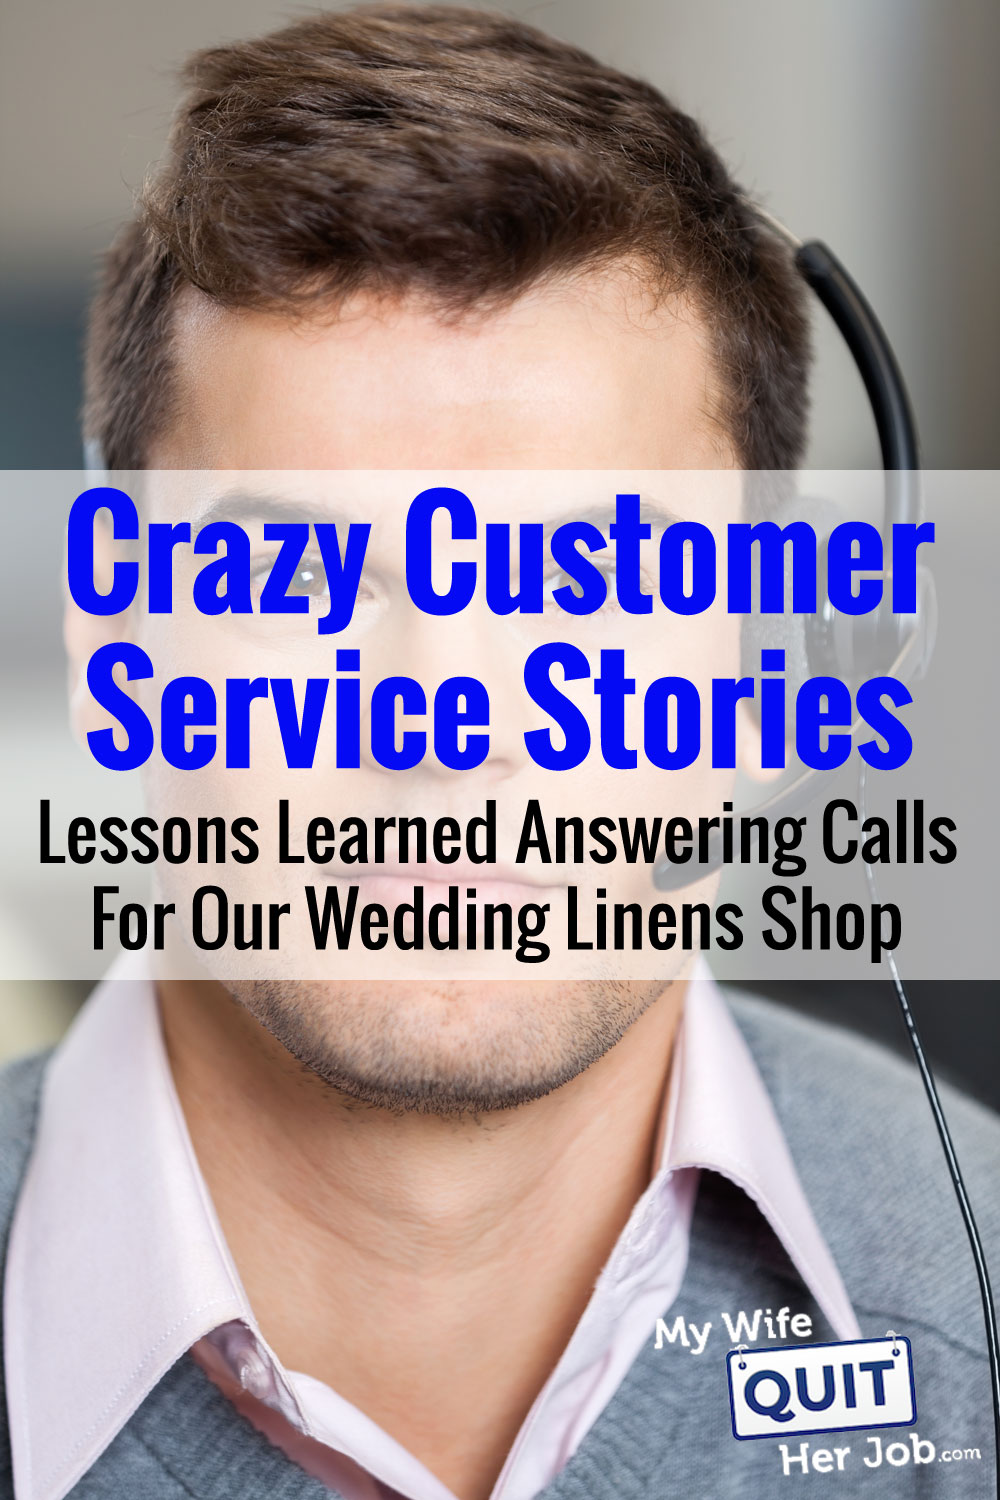 Crazy Customer Service Stories - Lessons Learned Answering Calls For Our Wedding Shop